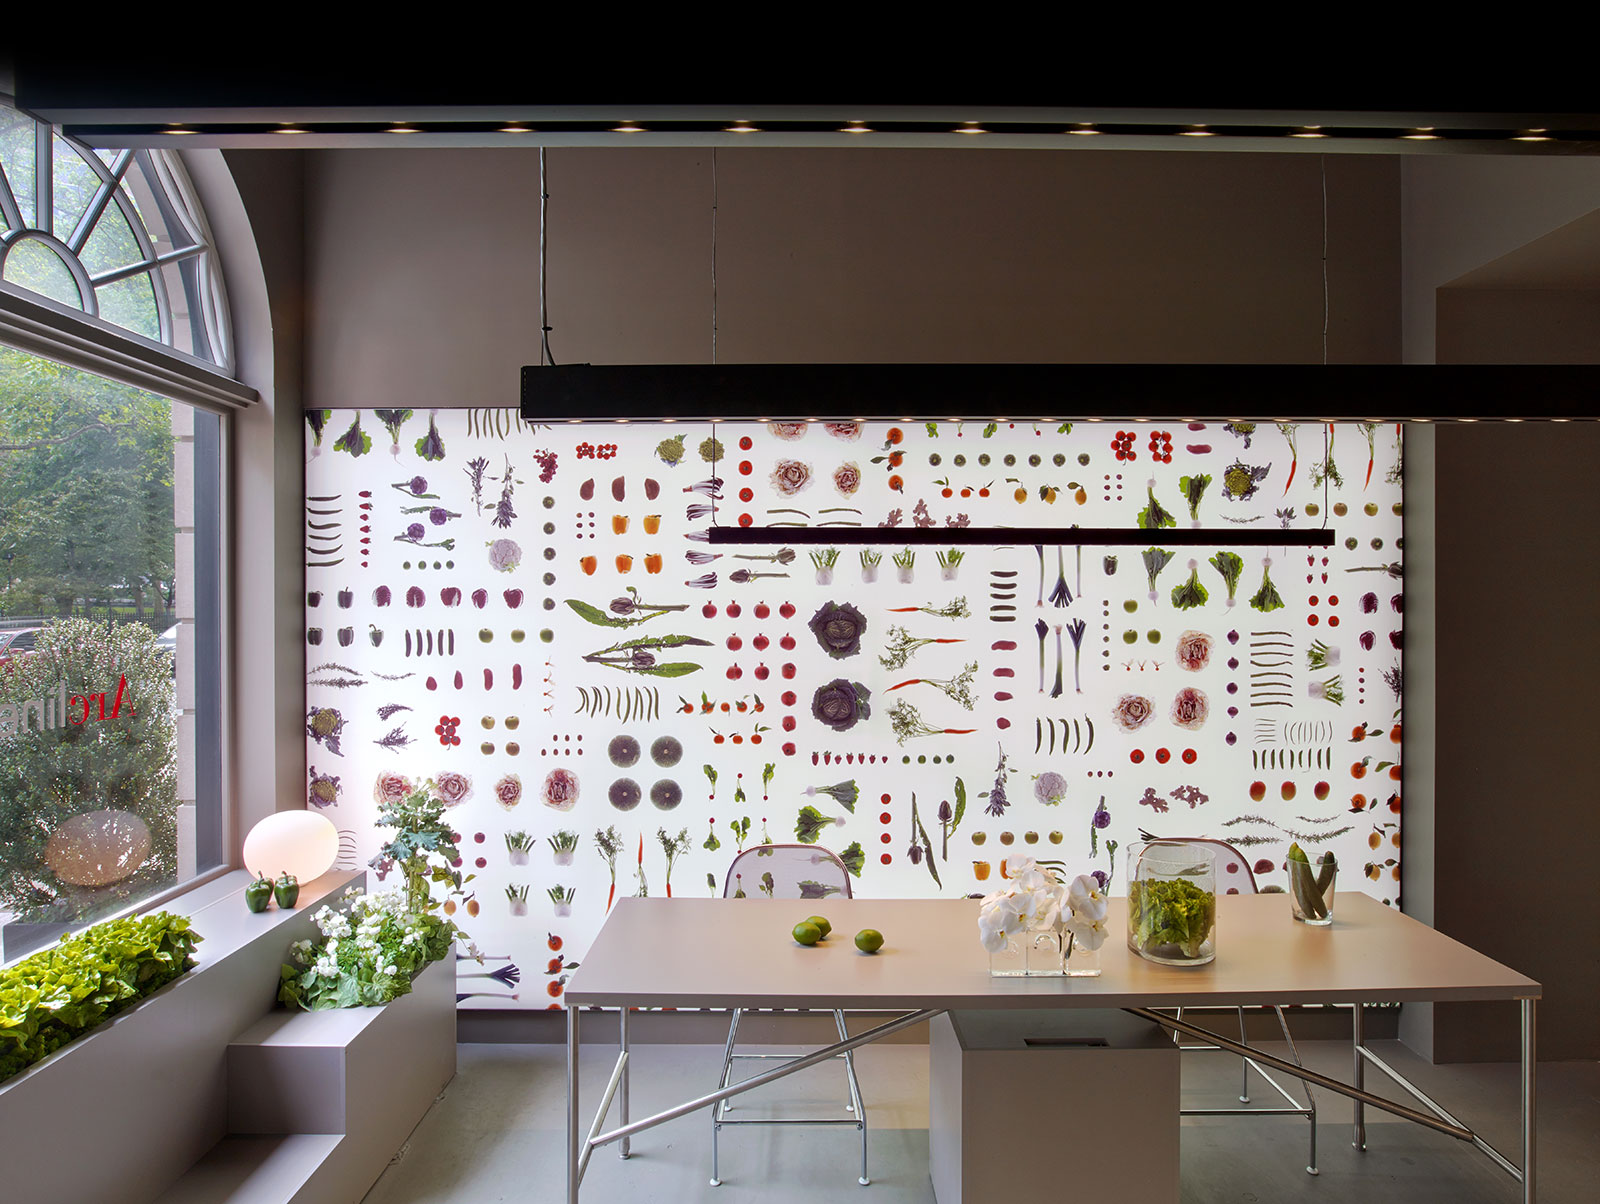 Arclinea-NYC-101.jpg